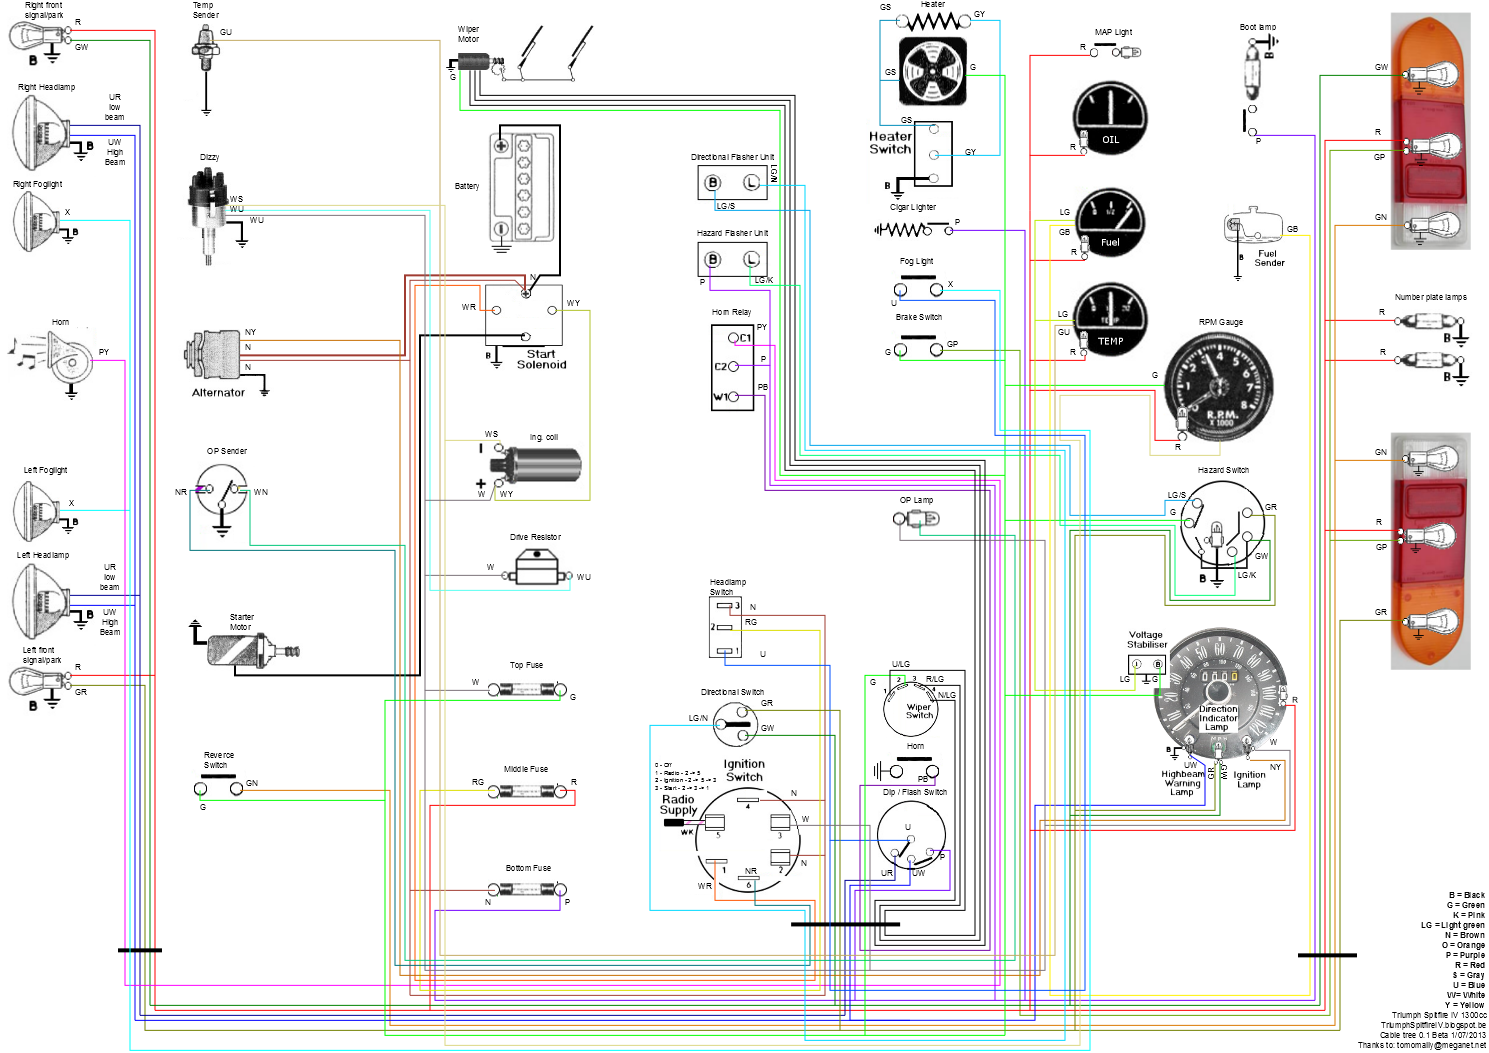 spitfire iv wiring diagram mk4 wiring diagram mk4 tdi wiring diagram \u2022 wiring diagrams j  at nearapp.co